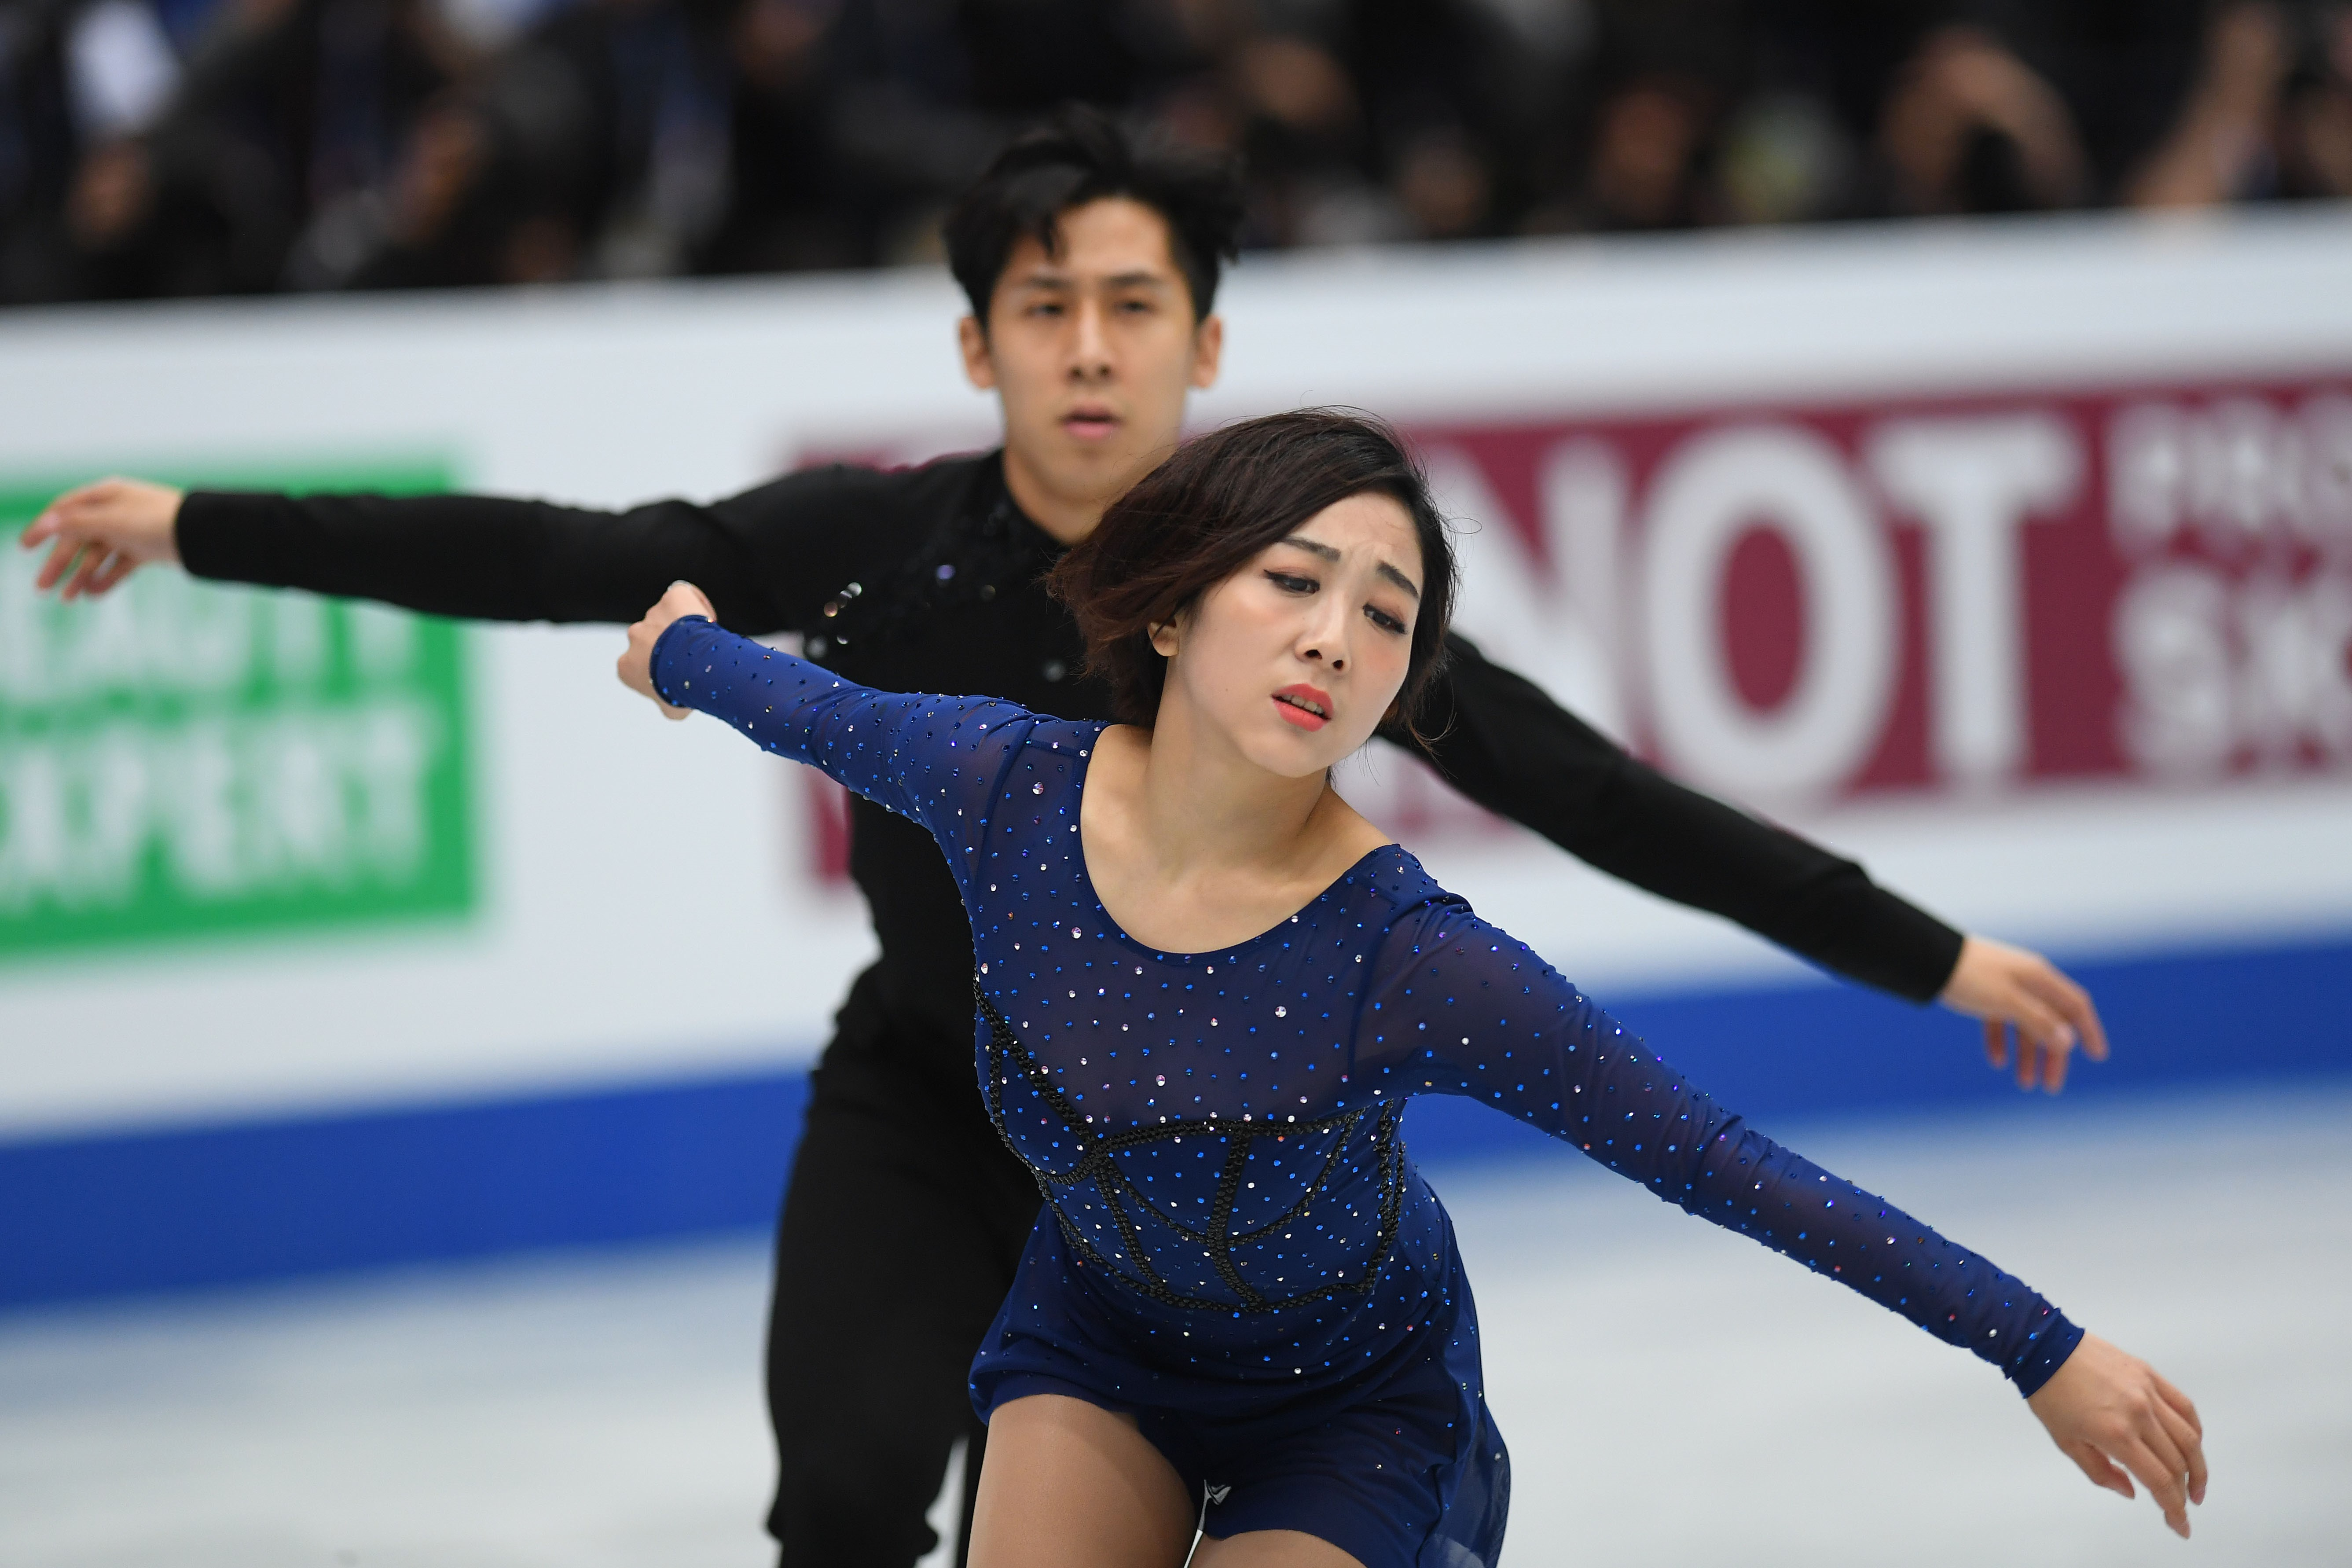 Wenjing Sui and Cong Han of China compete in the Pairs free skating during day 2 of the ISU World Figure Skating Championships 2019 at Saitama Super Arena on March 21, 2019 in Saitama